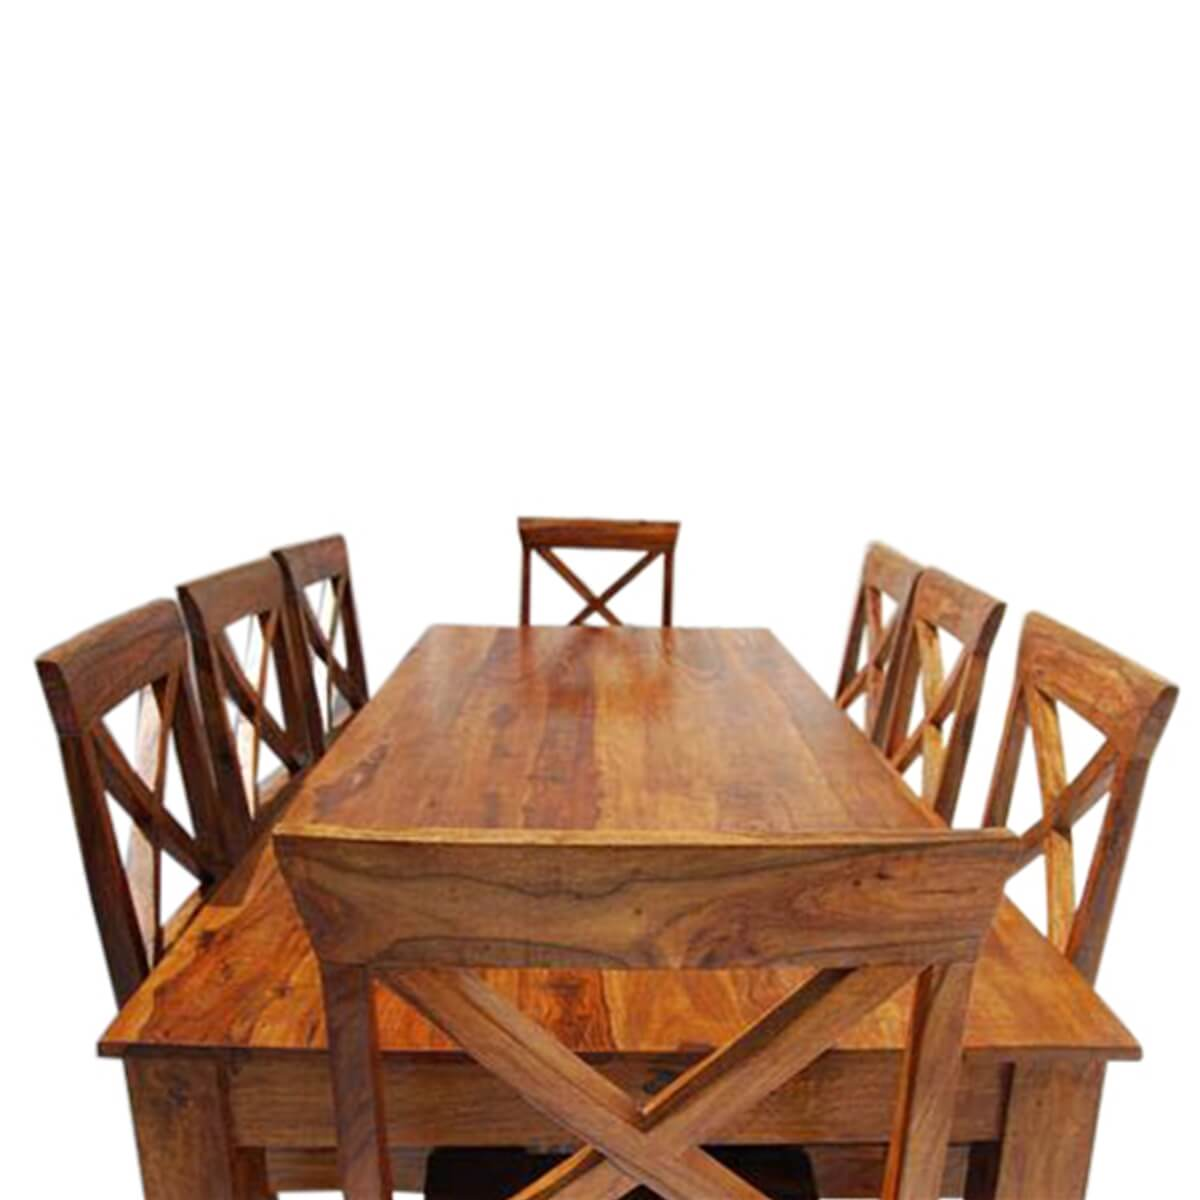 Large Rustic Oklahoma Solid Wood Dining Table amp Chair Set : 13535 from www.sierralivingconcepts.com size 1200 x 1200 jpeg 329kB